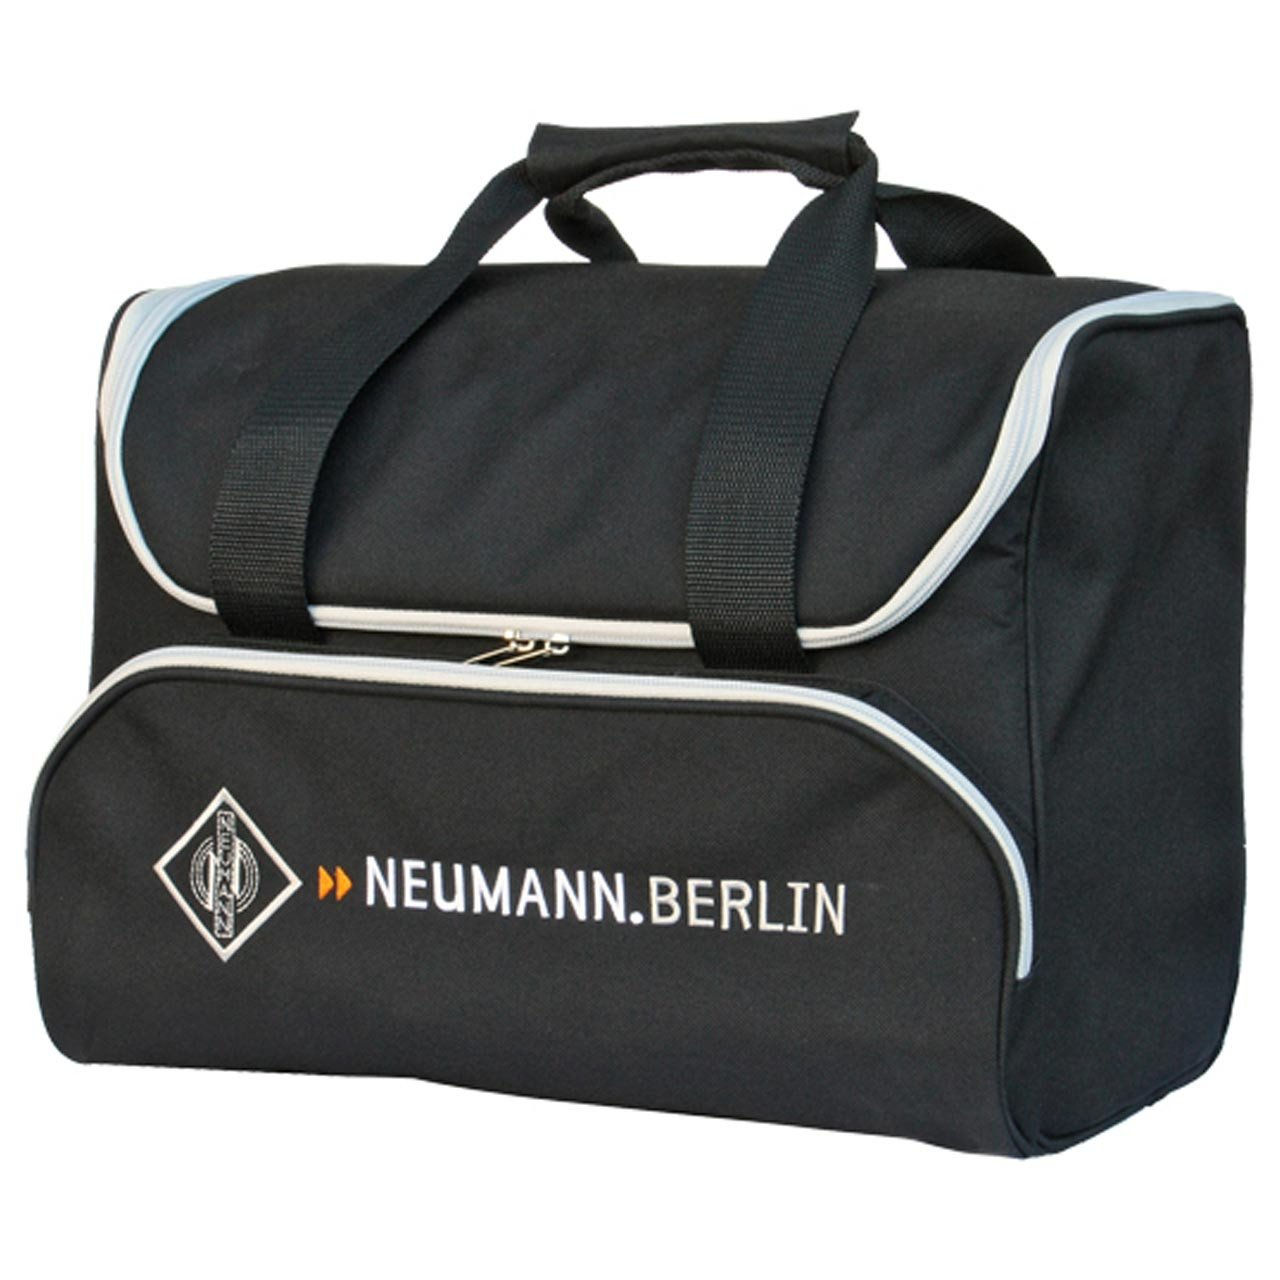 Studio Monitor Accessories - Neumann BKH 120 - Soft Carry Bag ( 503940 )